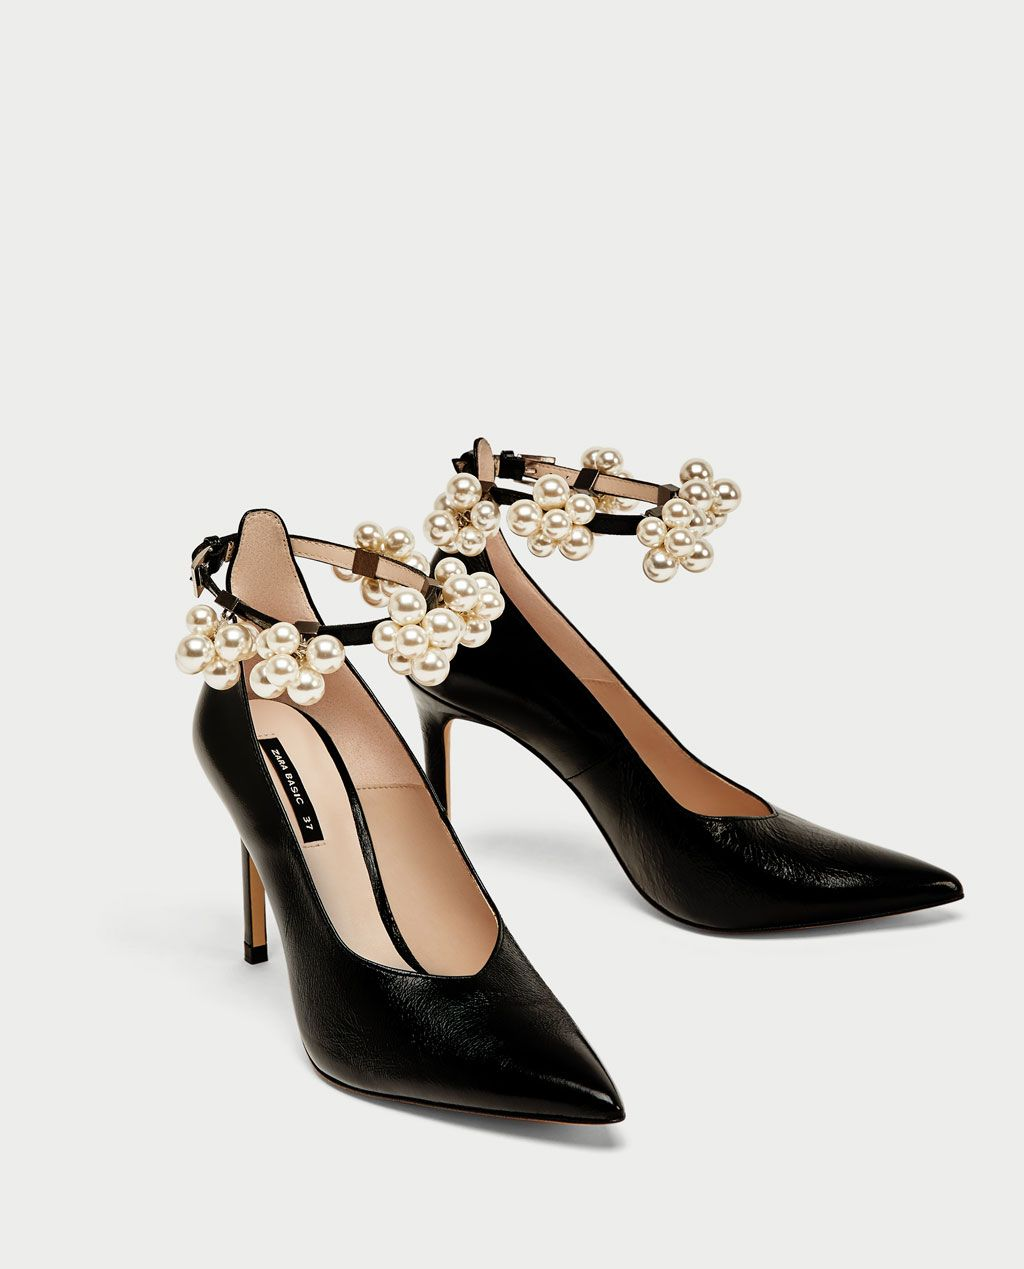 b0d77728e29 Image 3 of HIGH HEEL COURT SHOES WITH BEADED ANKLE STRAP from Zara ...